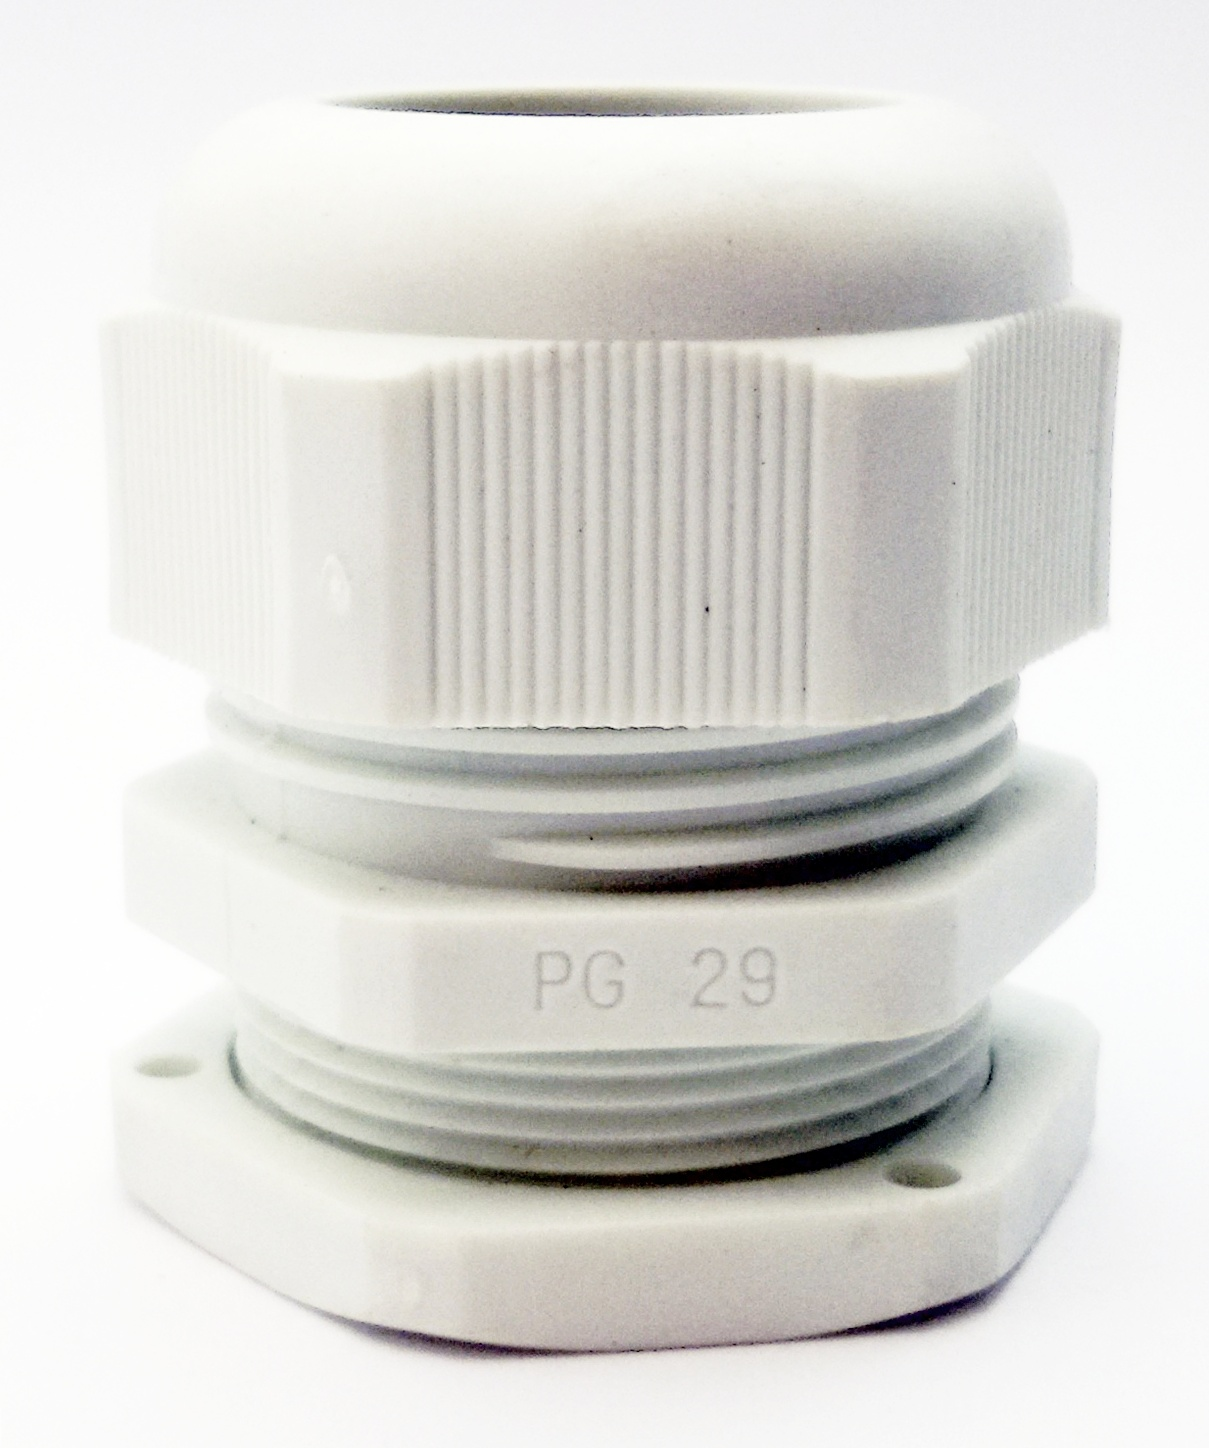 LOBO ELECTRIC CABLE GLAND PG29 18 - 25 mm. สีขาว